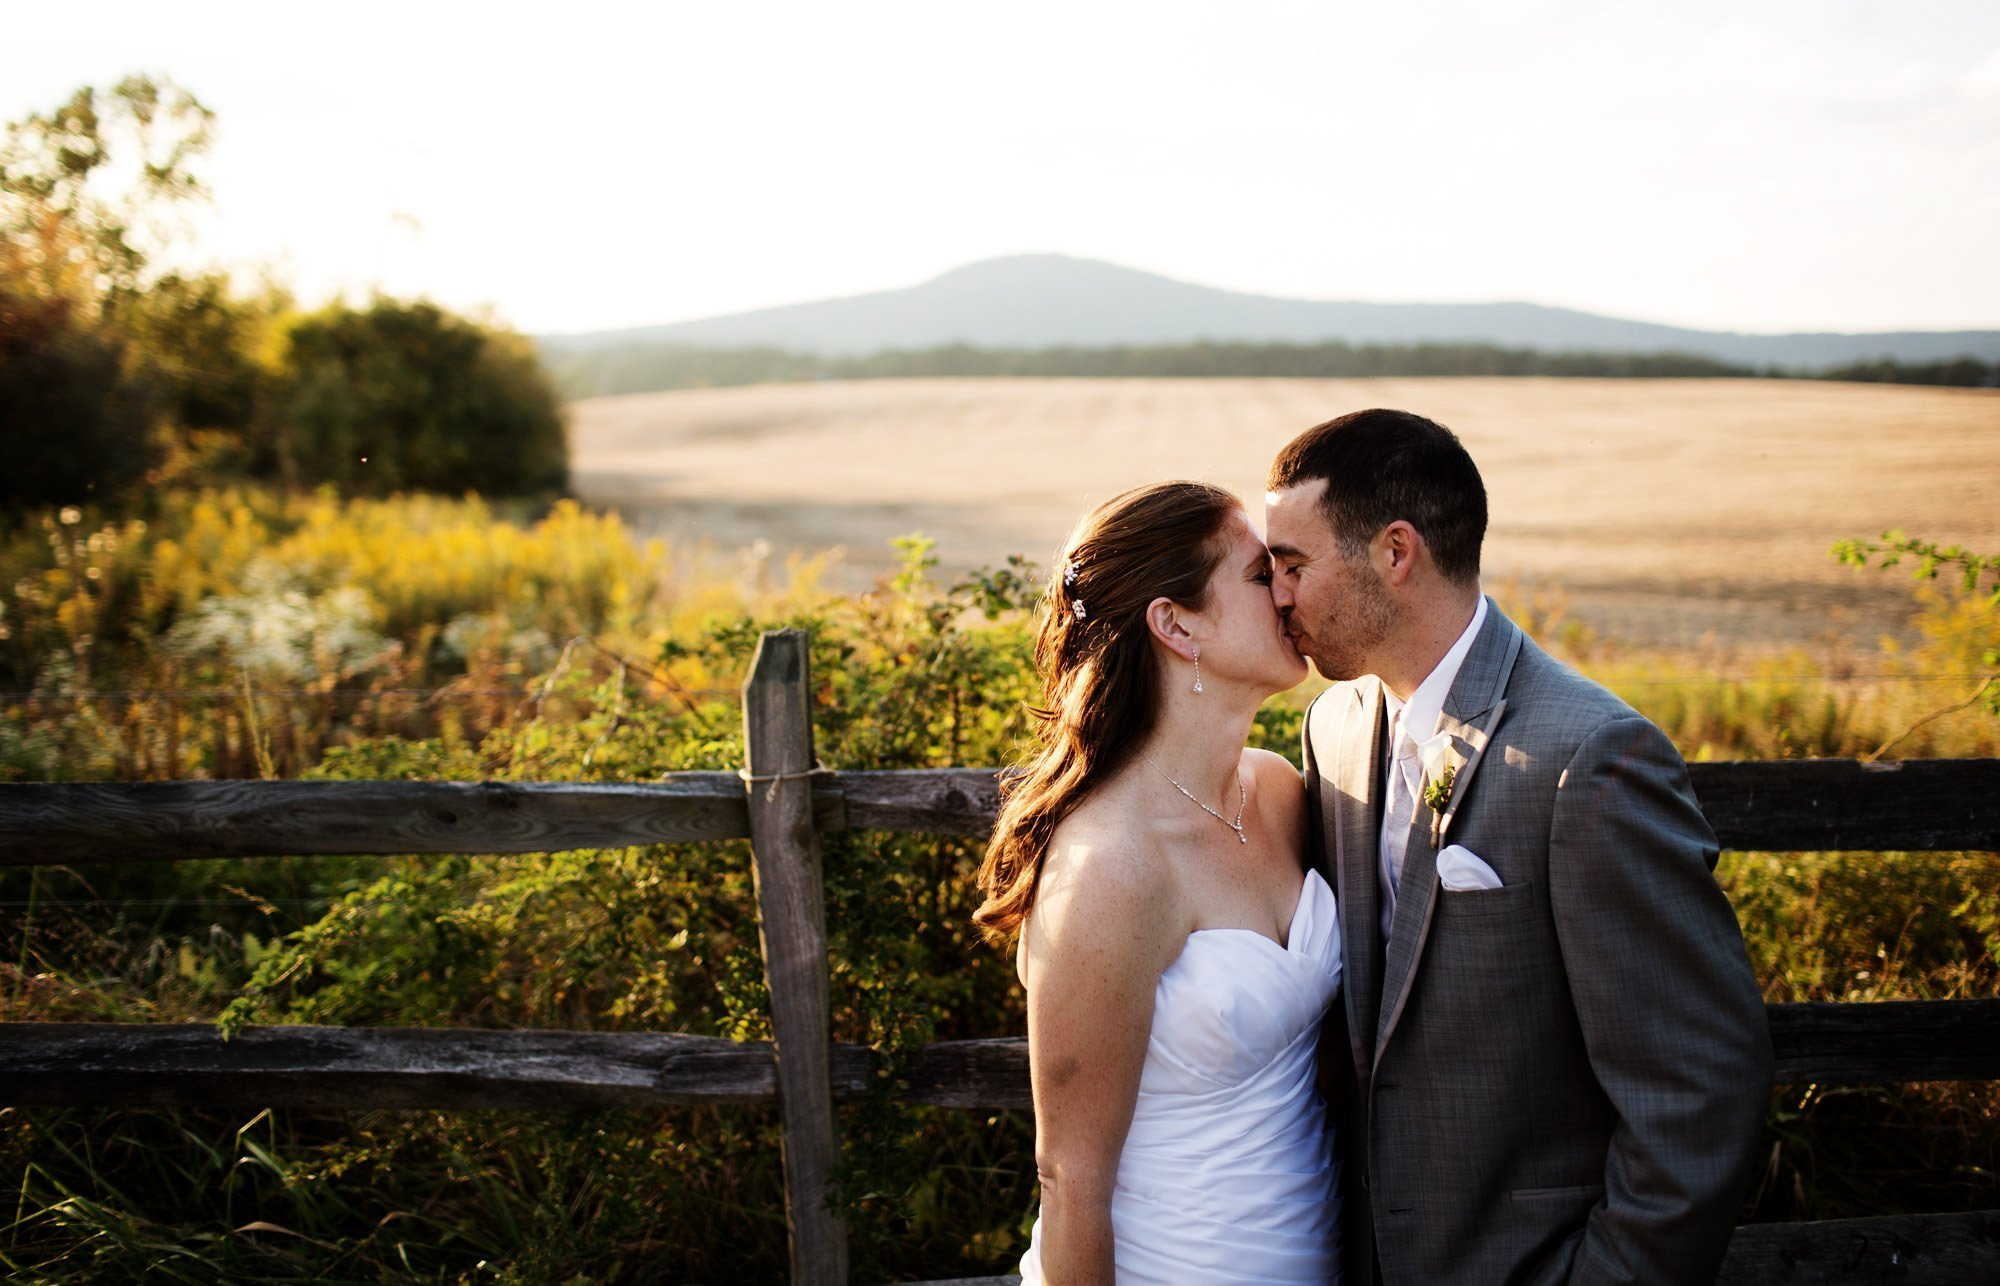 The couple kisses with the Sugarloaf Mountains in the distance during their Comus Inn wedding.